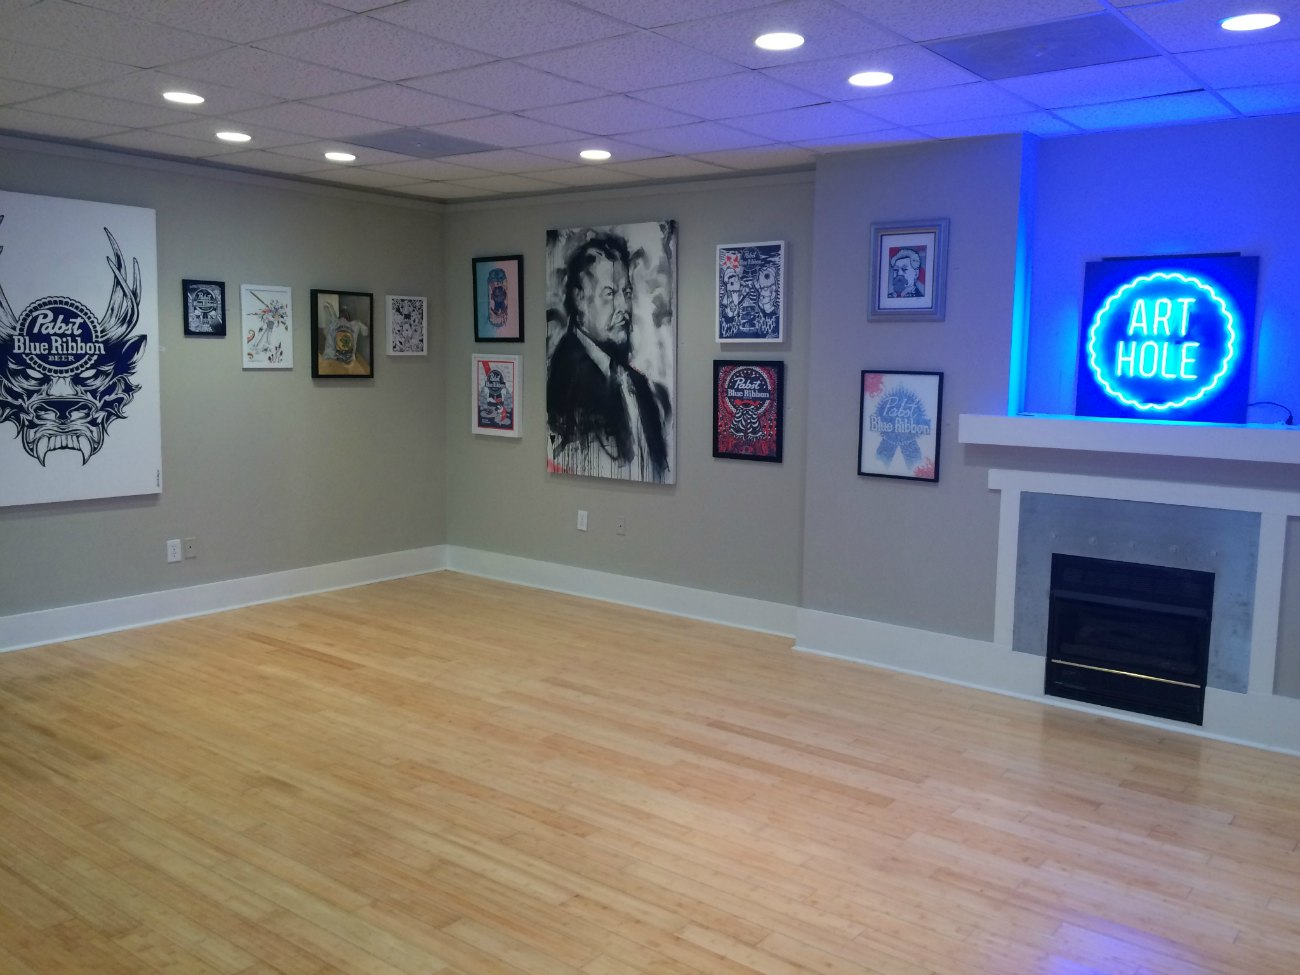 PBR's pop-up gallery Art Hole is now open in NoDa